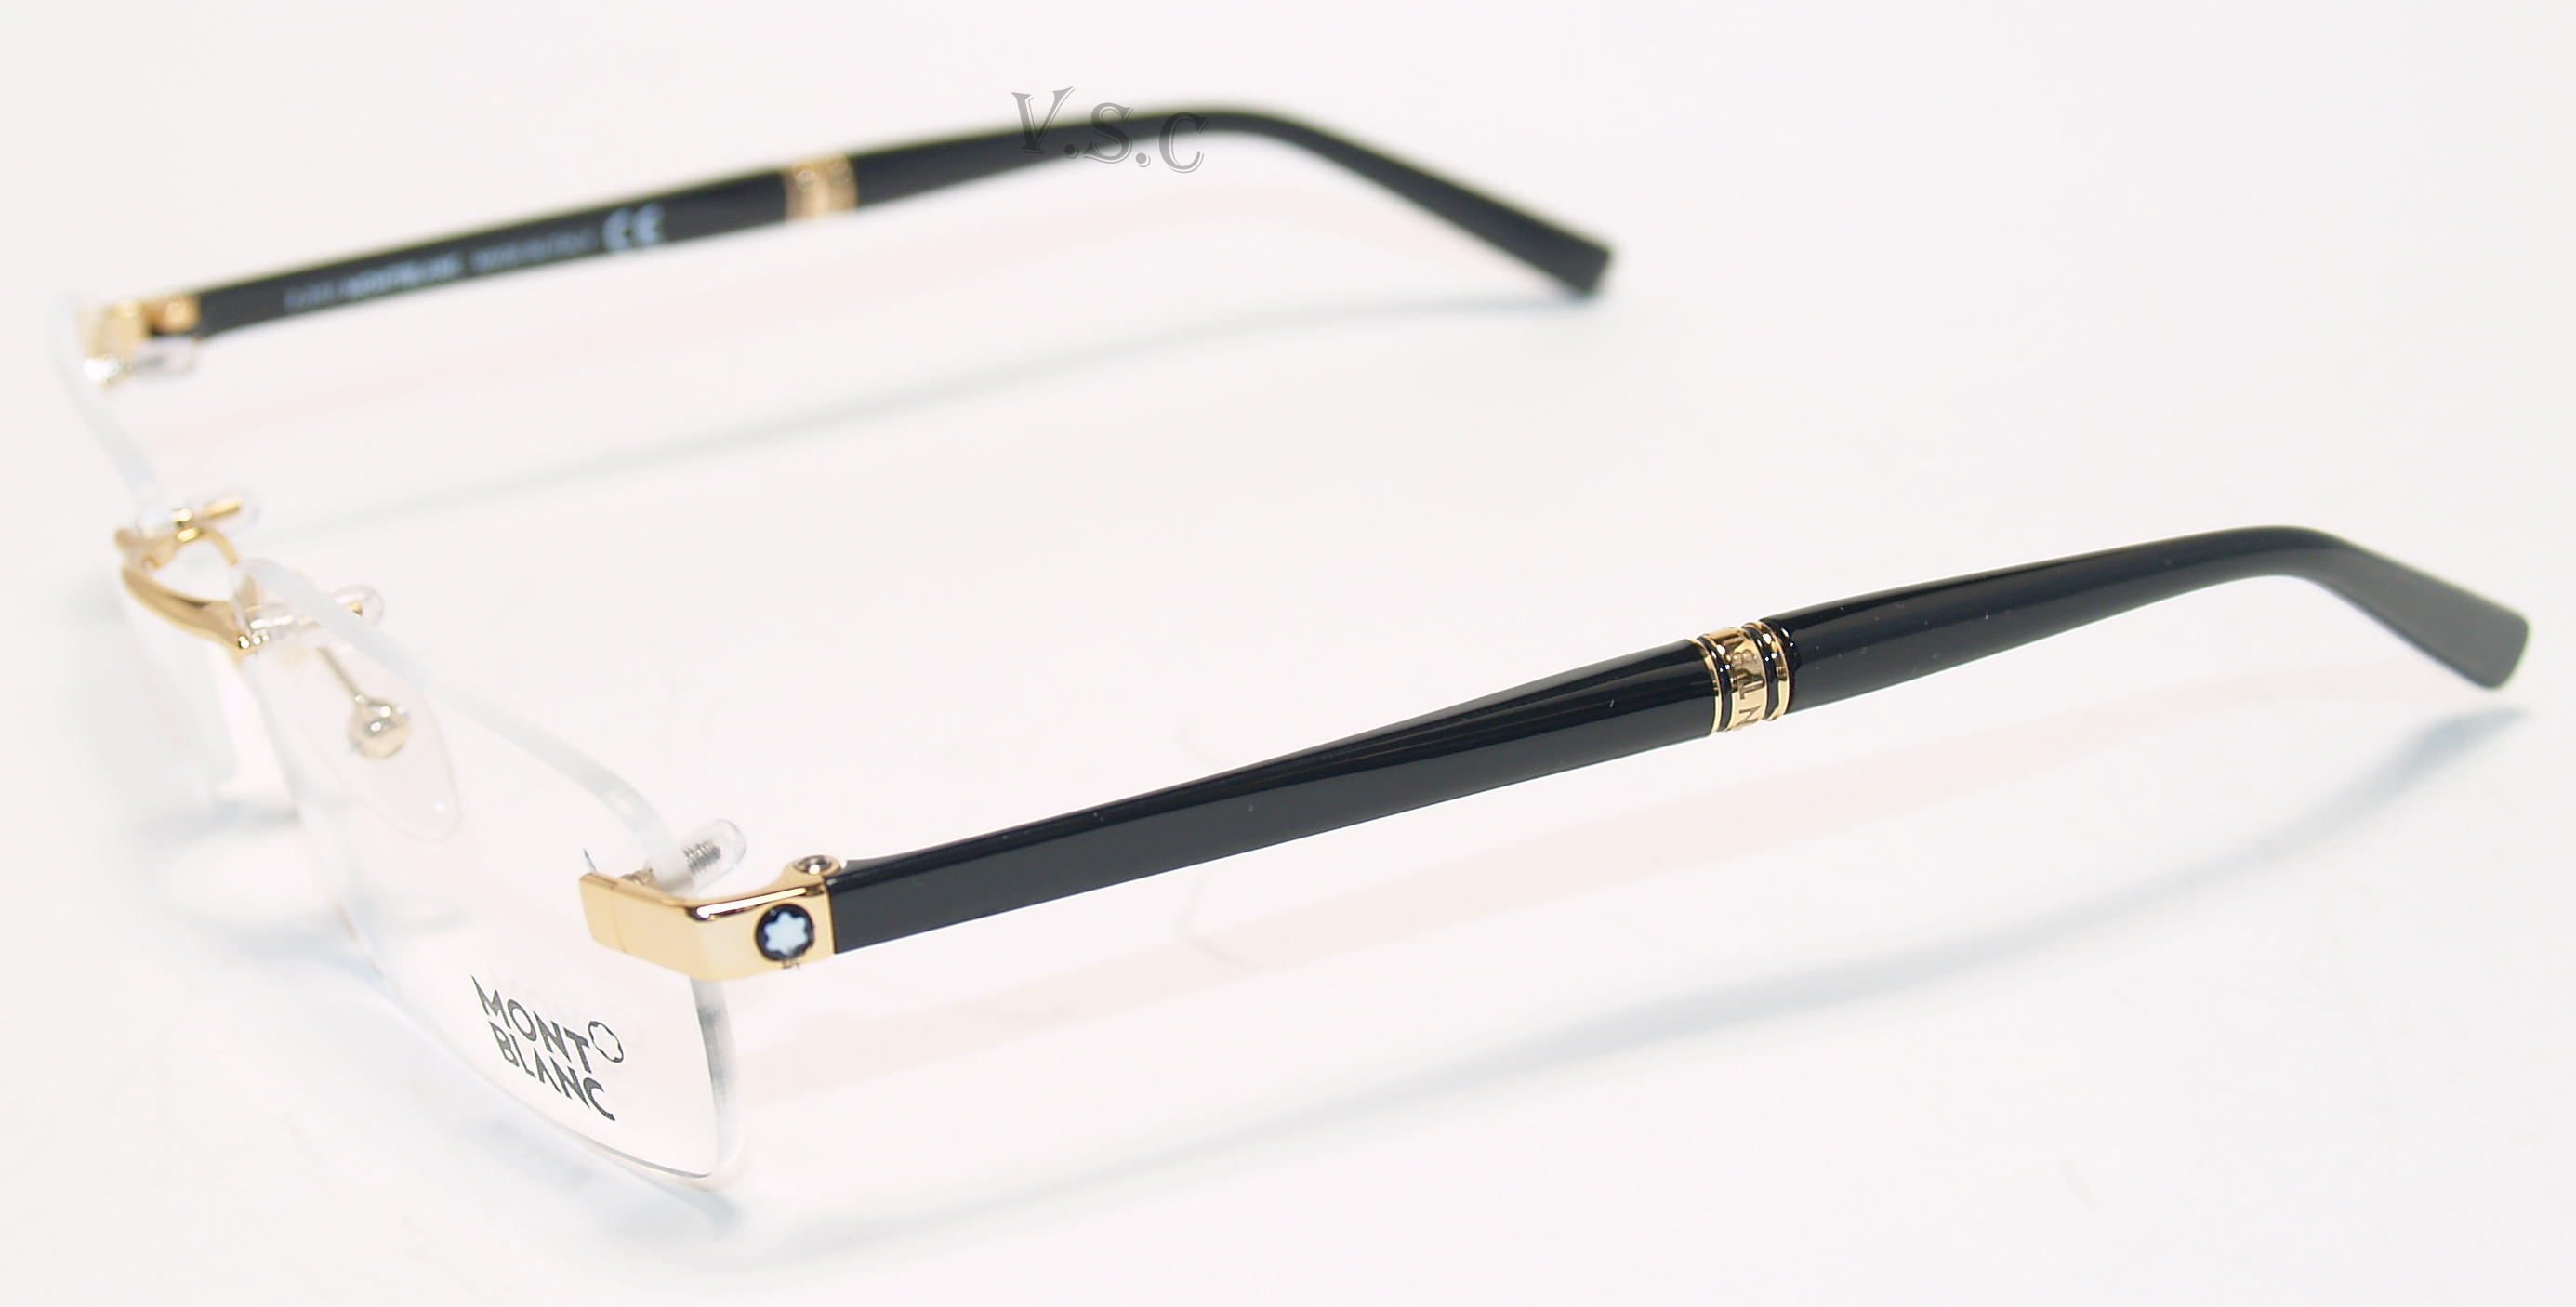 Gold Frame Rimless Glasses : MONT BLANC MB9101 EYEGLASSES MB 9101 PRESCRIPTION EYE ...